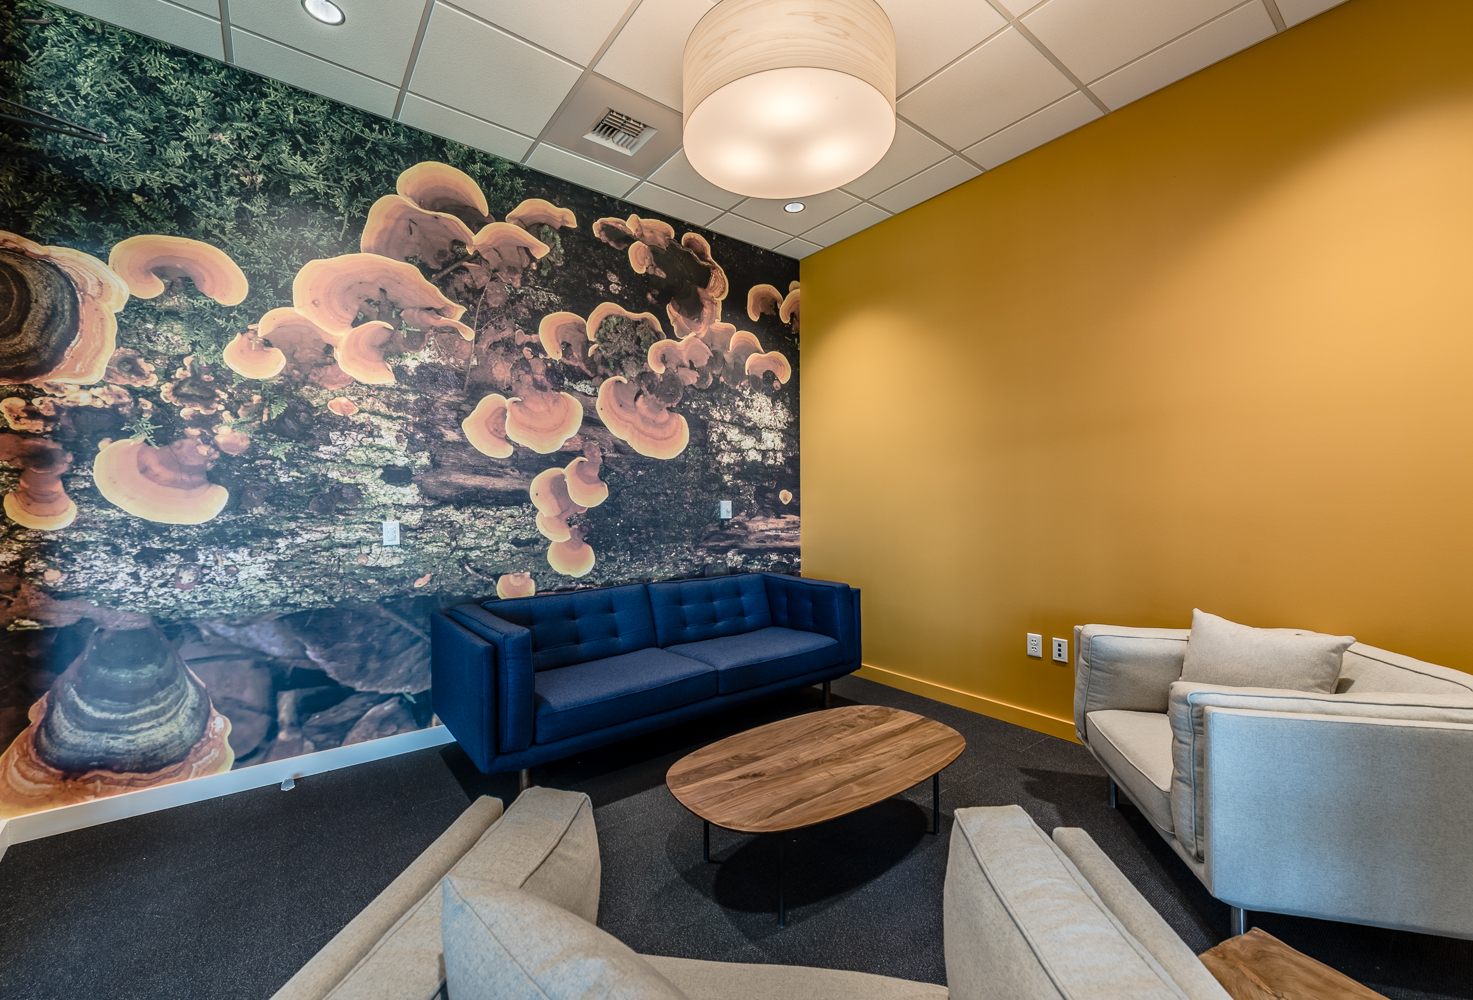 TM office interior improvements